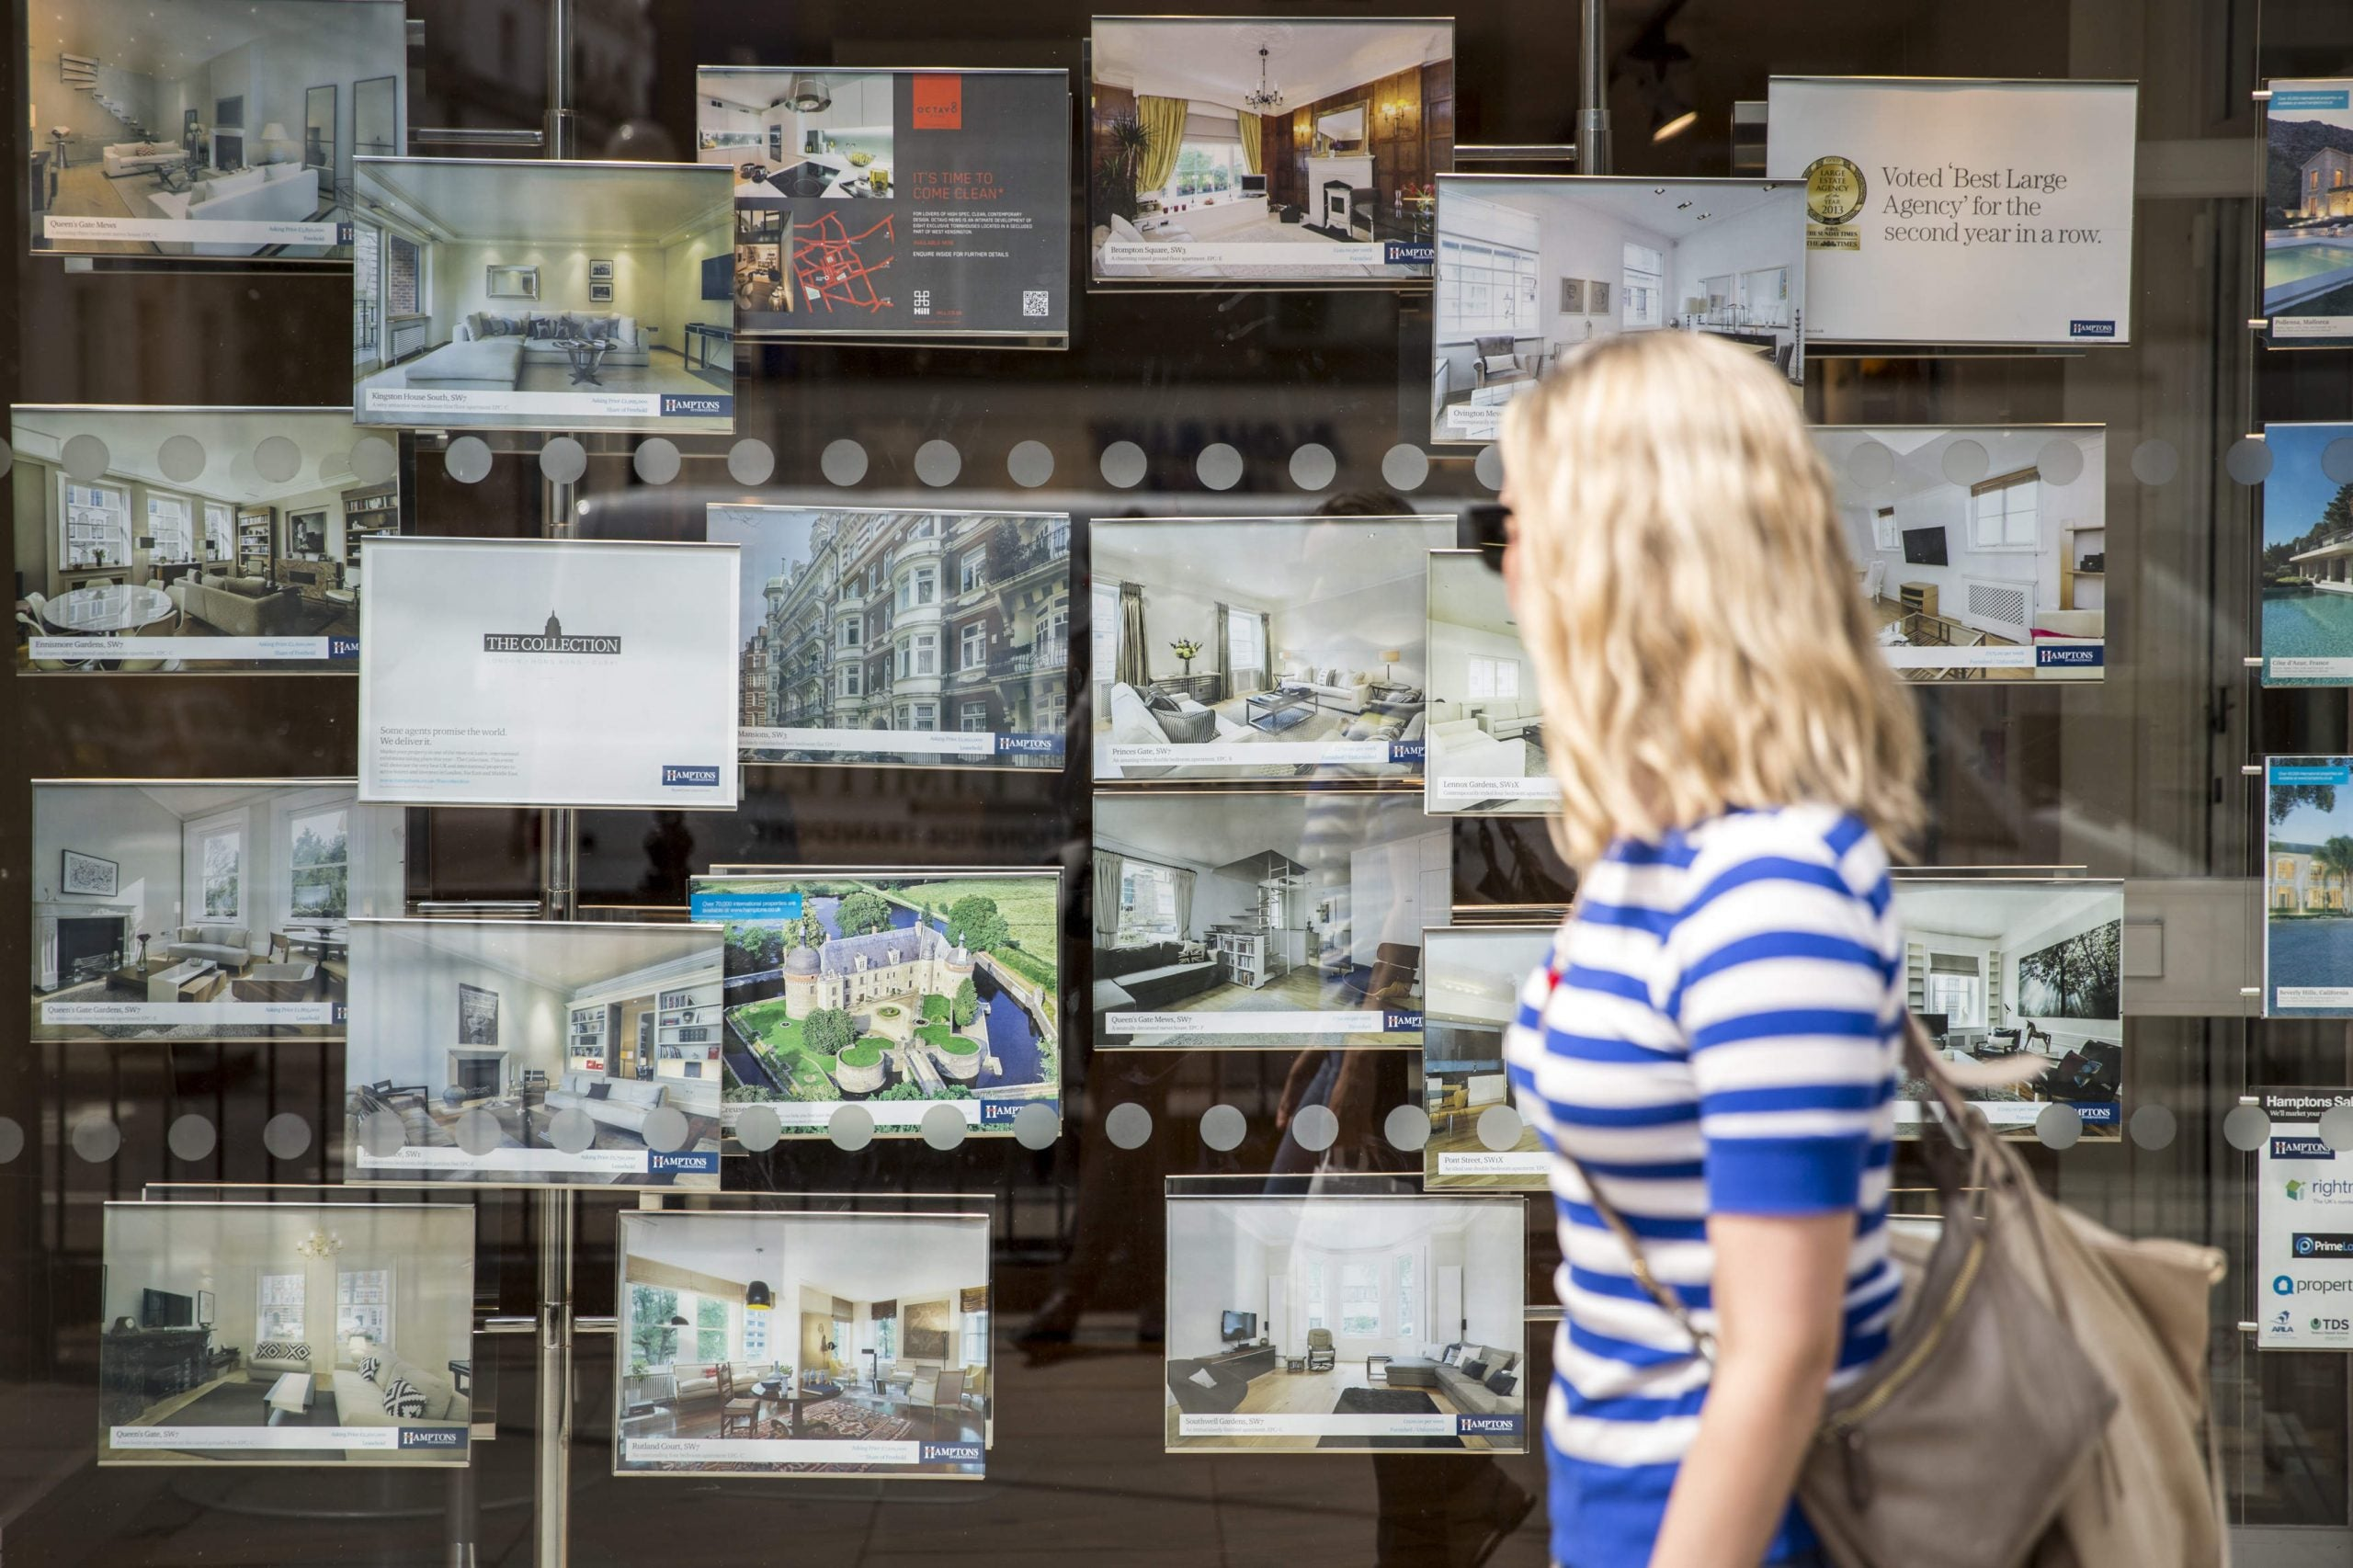 Don't believe the letting agents - banning fees is good for renters